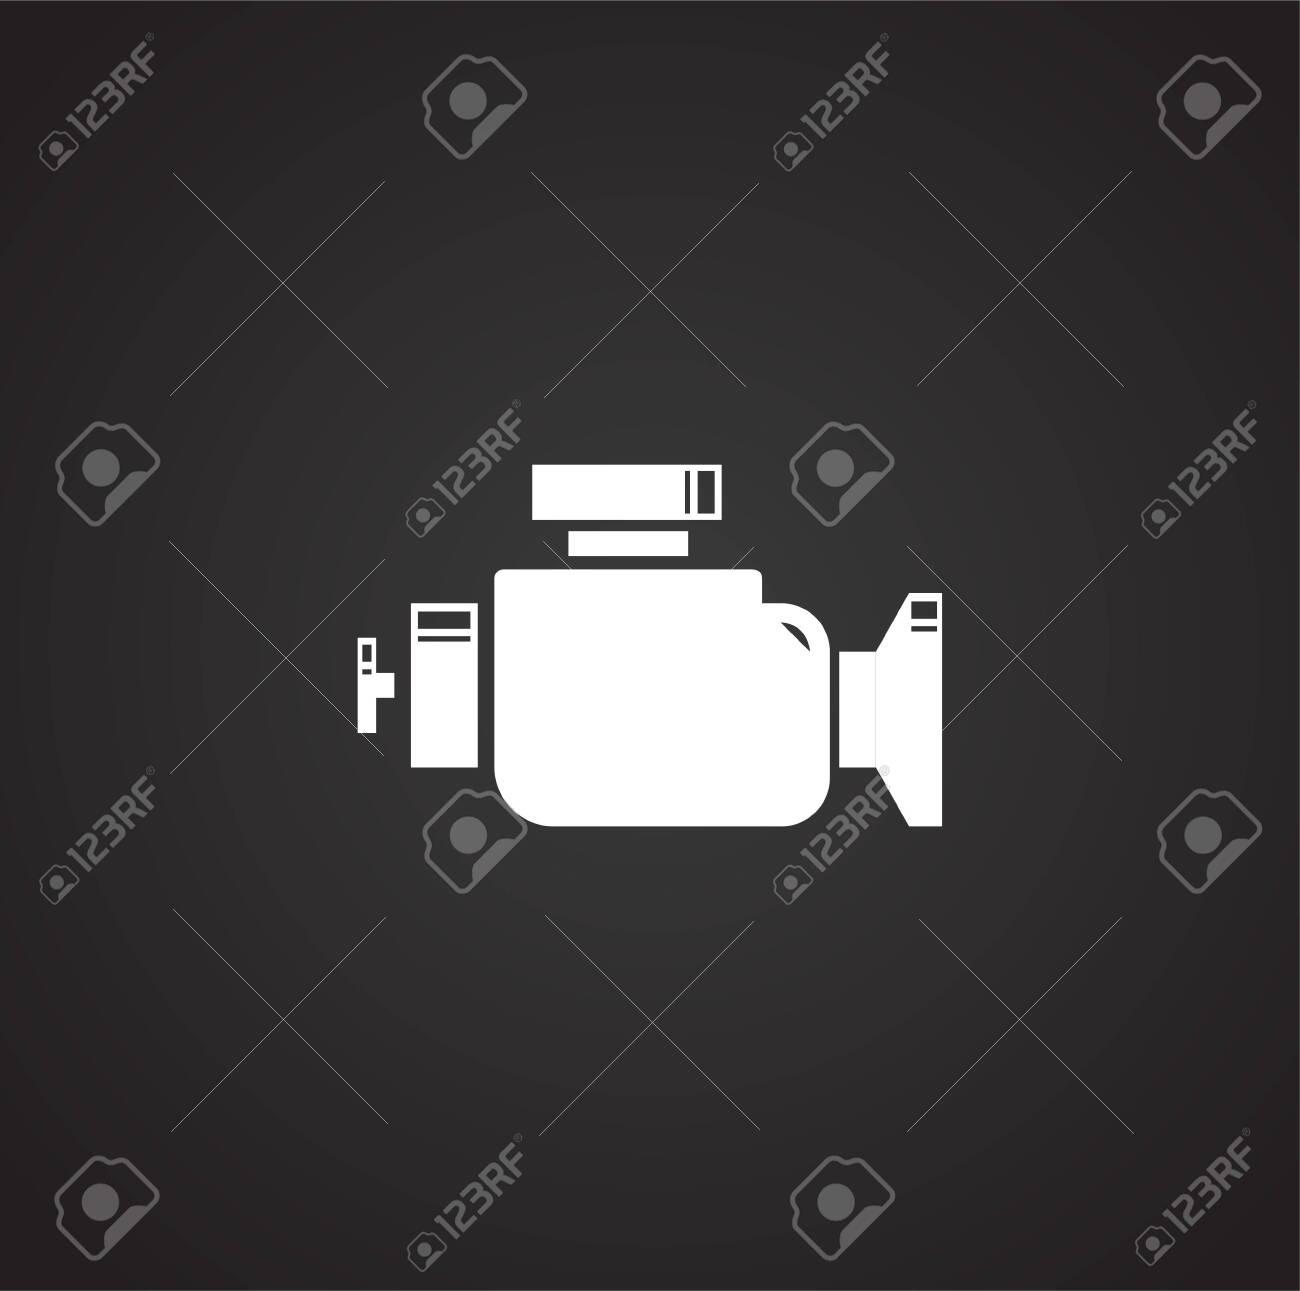 Car part related icon on background for graphic and web design. Simple illustration. Internet concept symbol for website button or mobile app - 151364133